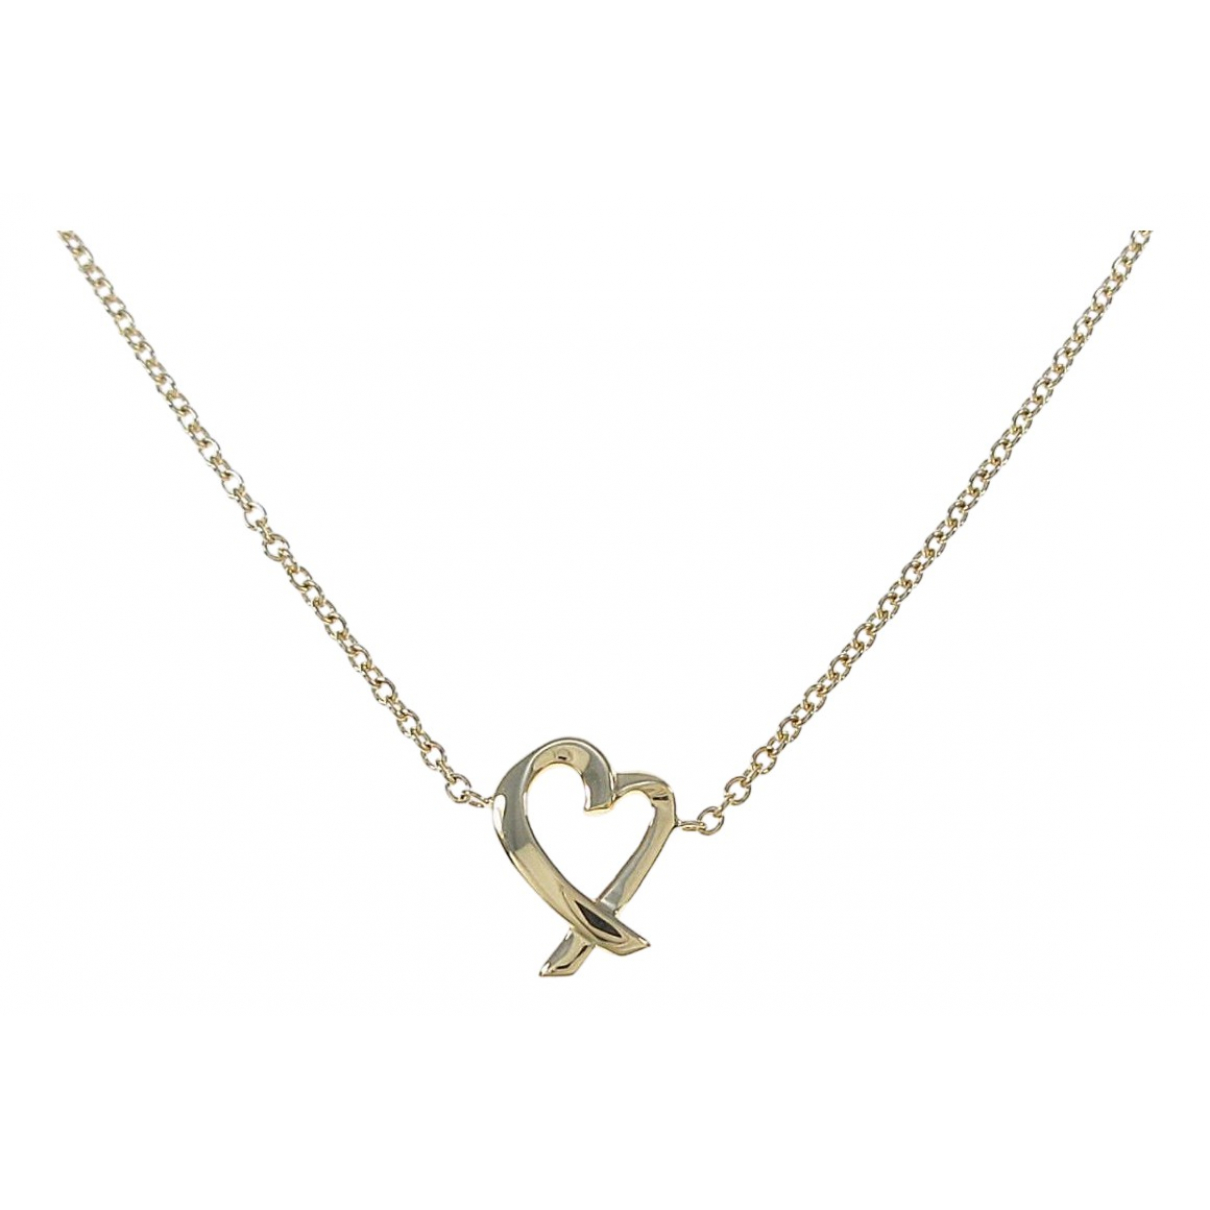 Tiffany & Co Paloma Picasso Kette in  Gold Gelbgold